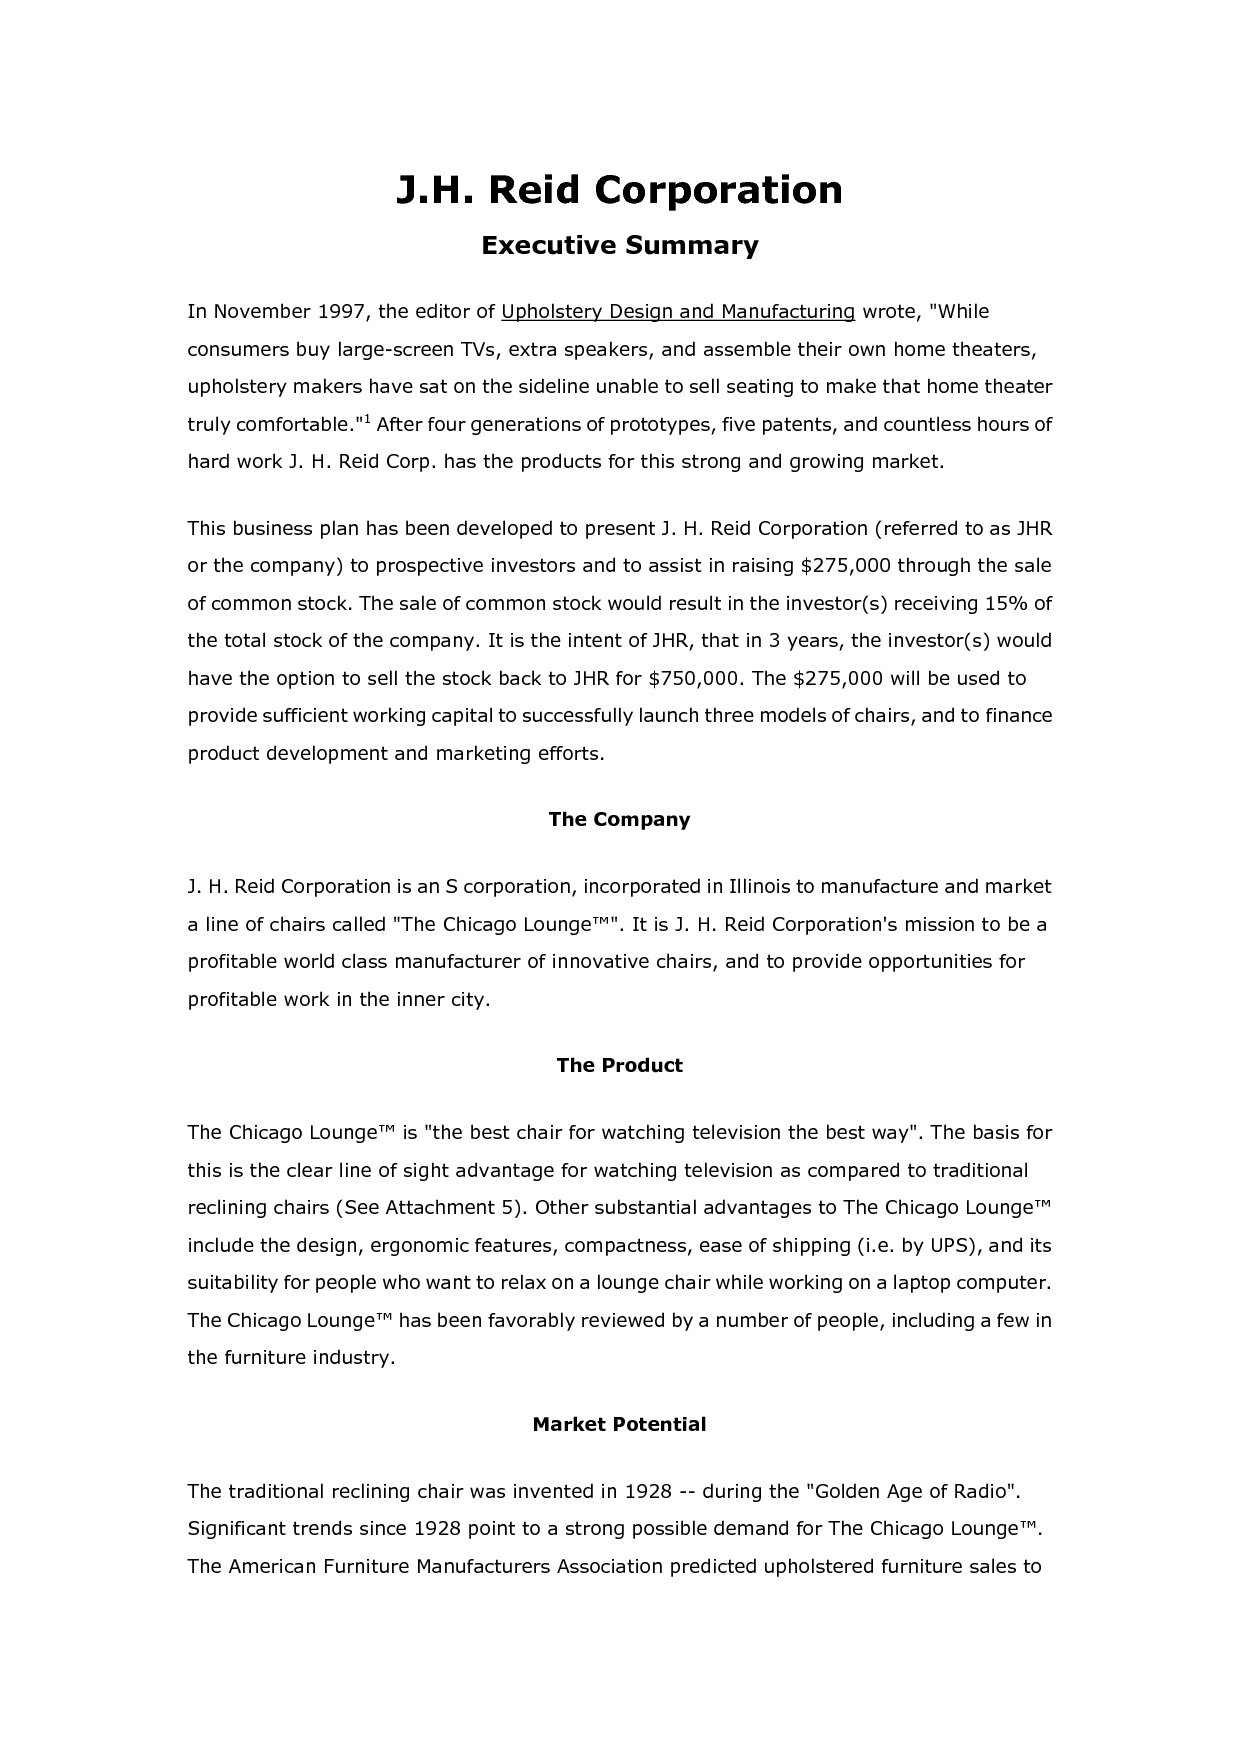 Proposal Essay  Elitamydearestco Proposal Essay Ideas Proposal Essays Essay Examples Socialsci Ideas